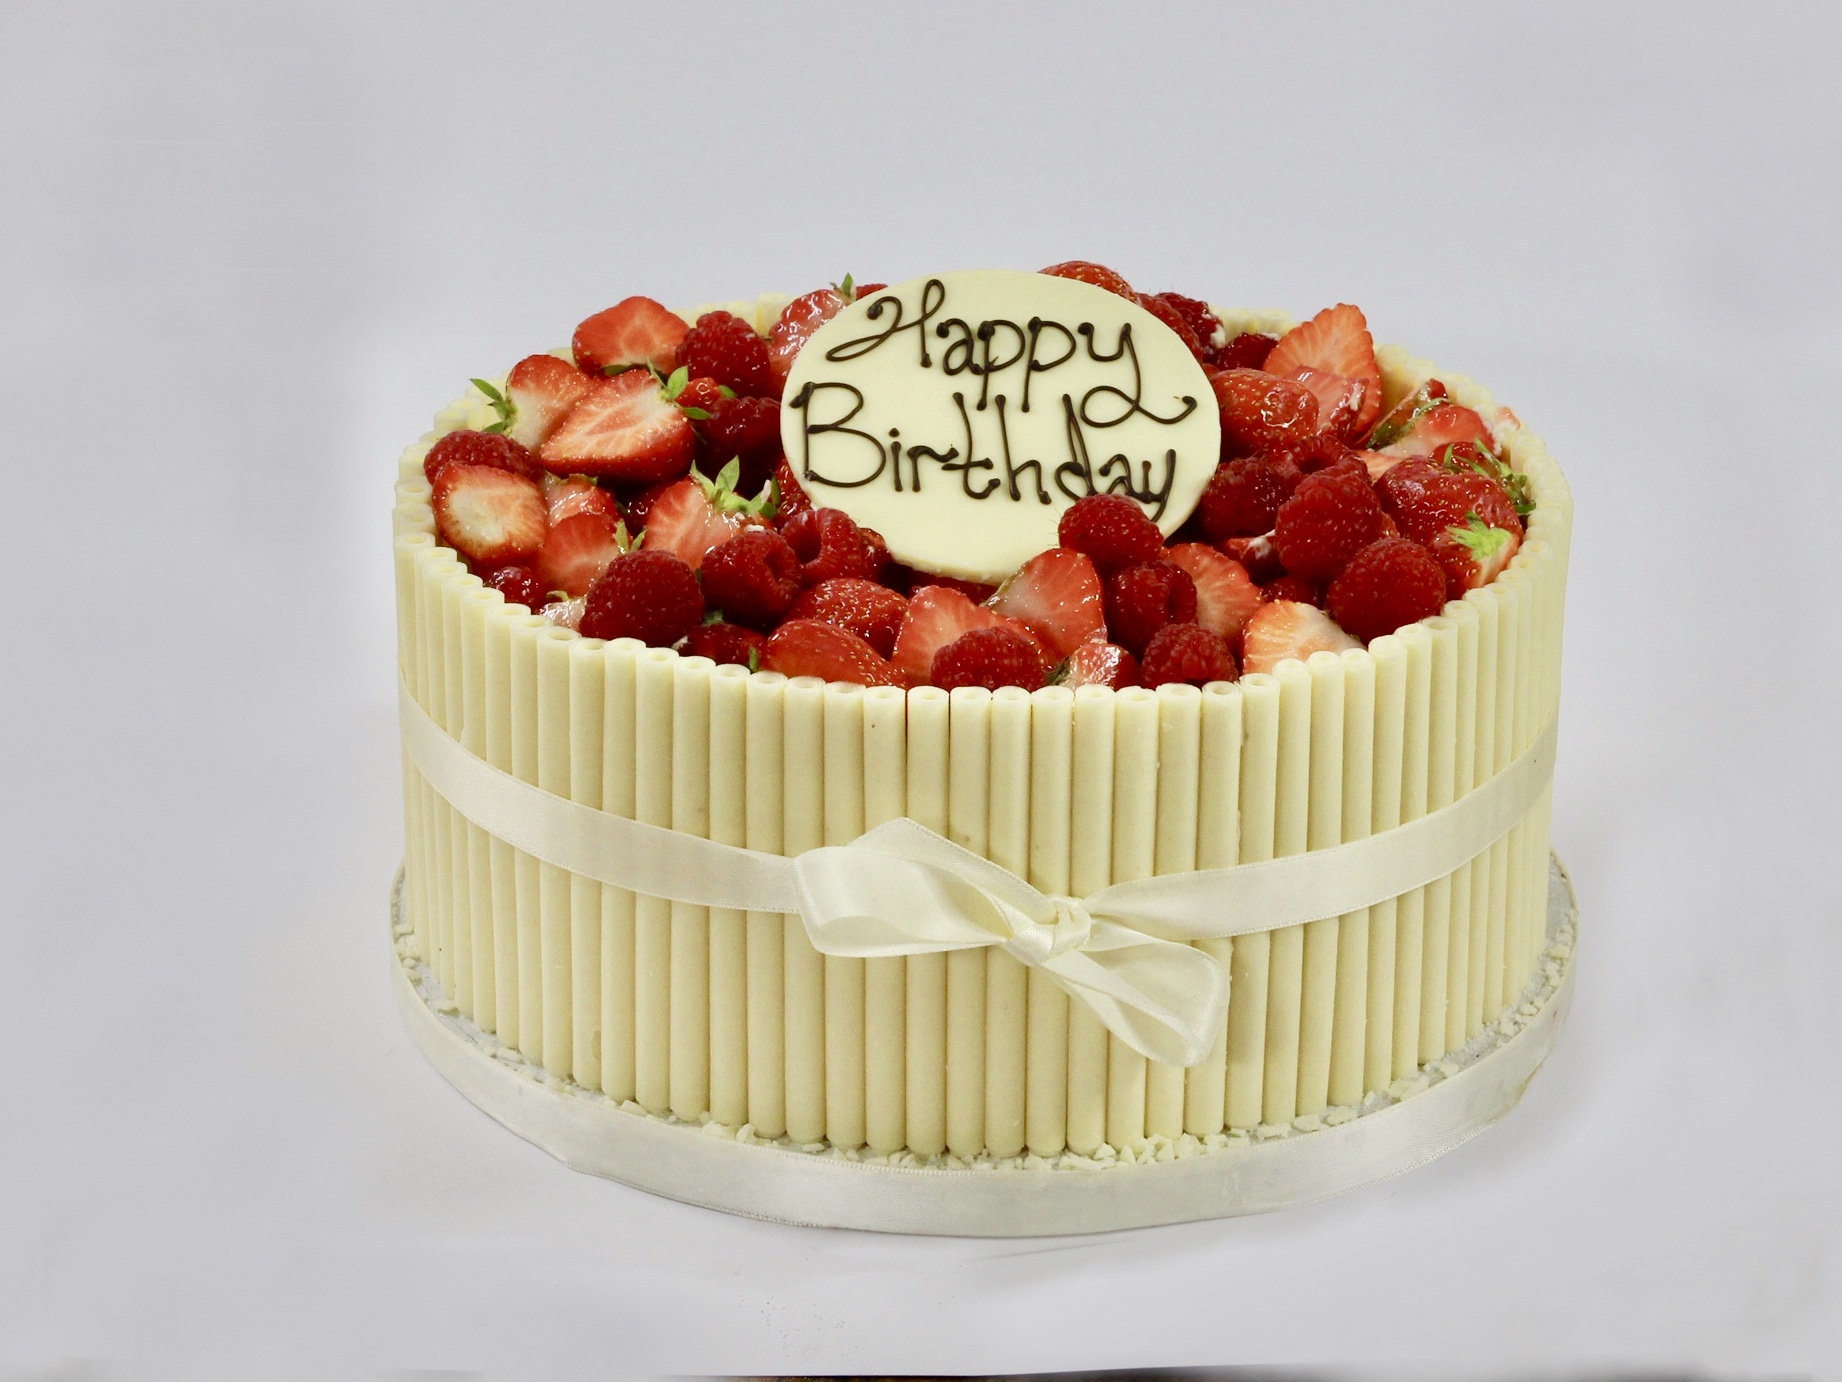 Celebration Cakes - White Chocolate Cigarello Birthday Cake